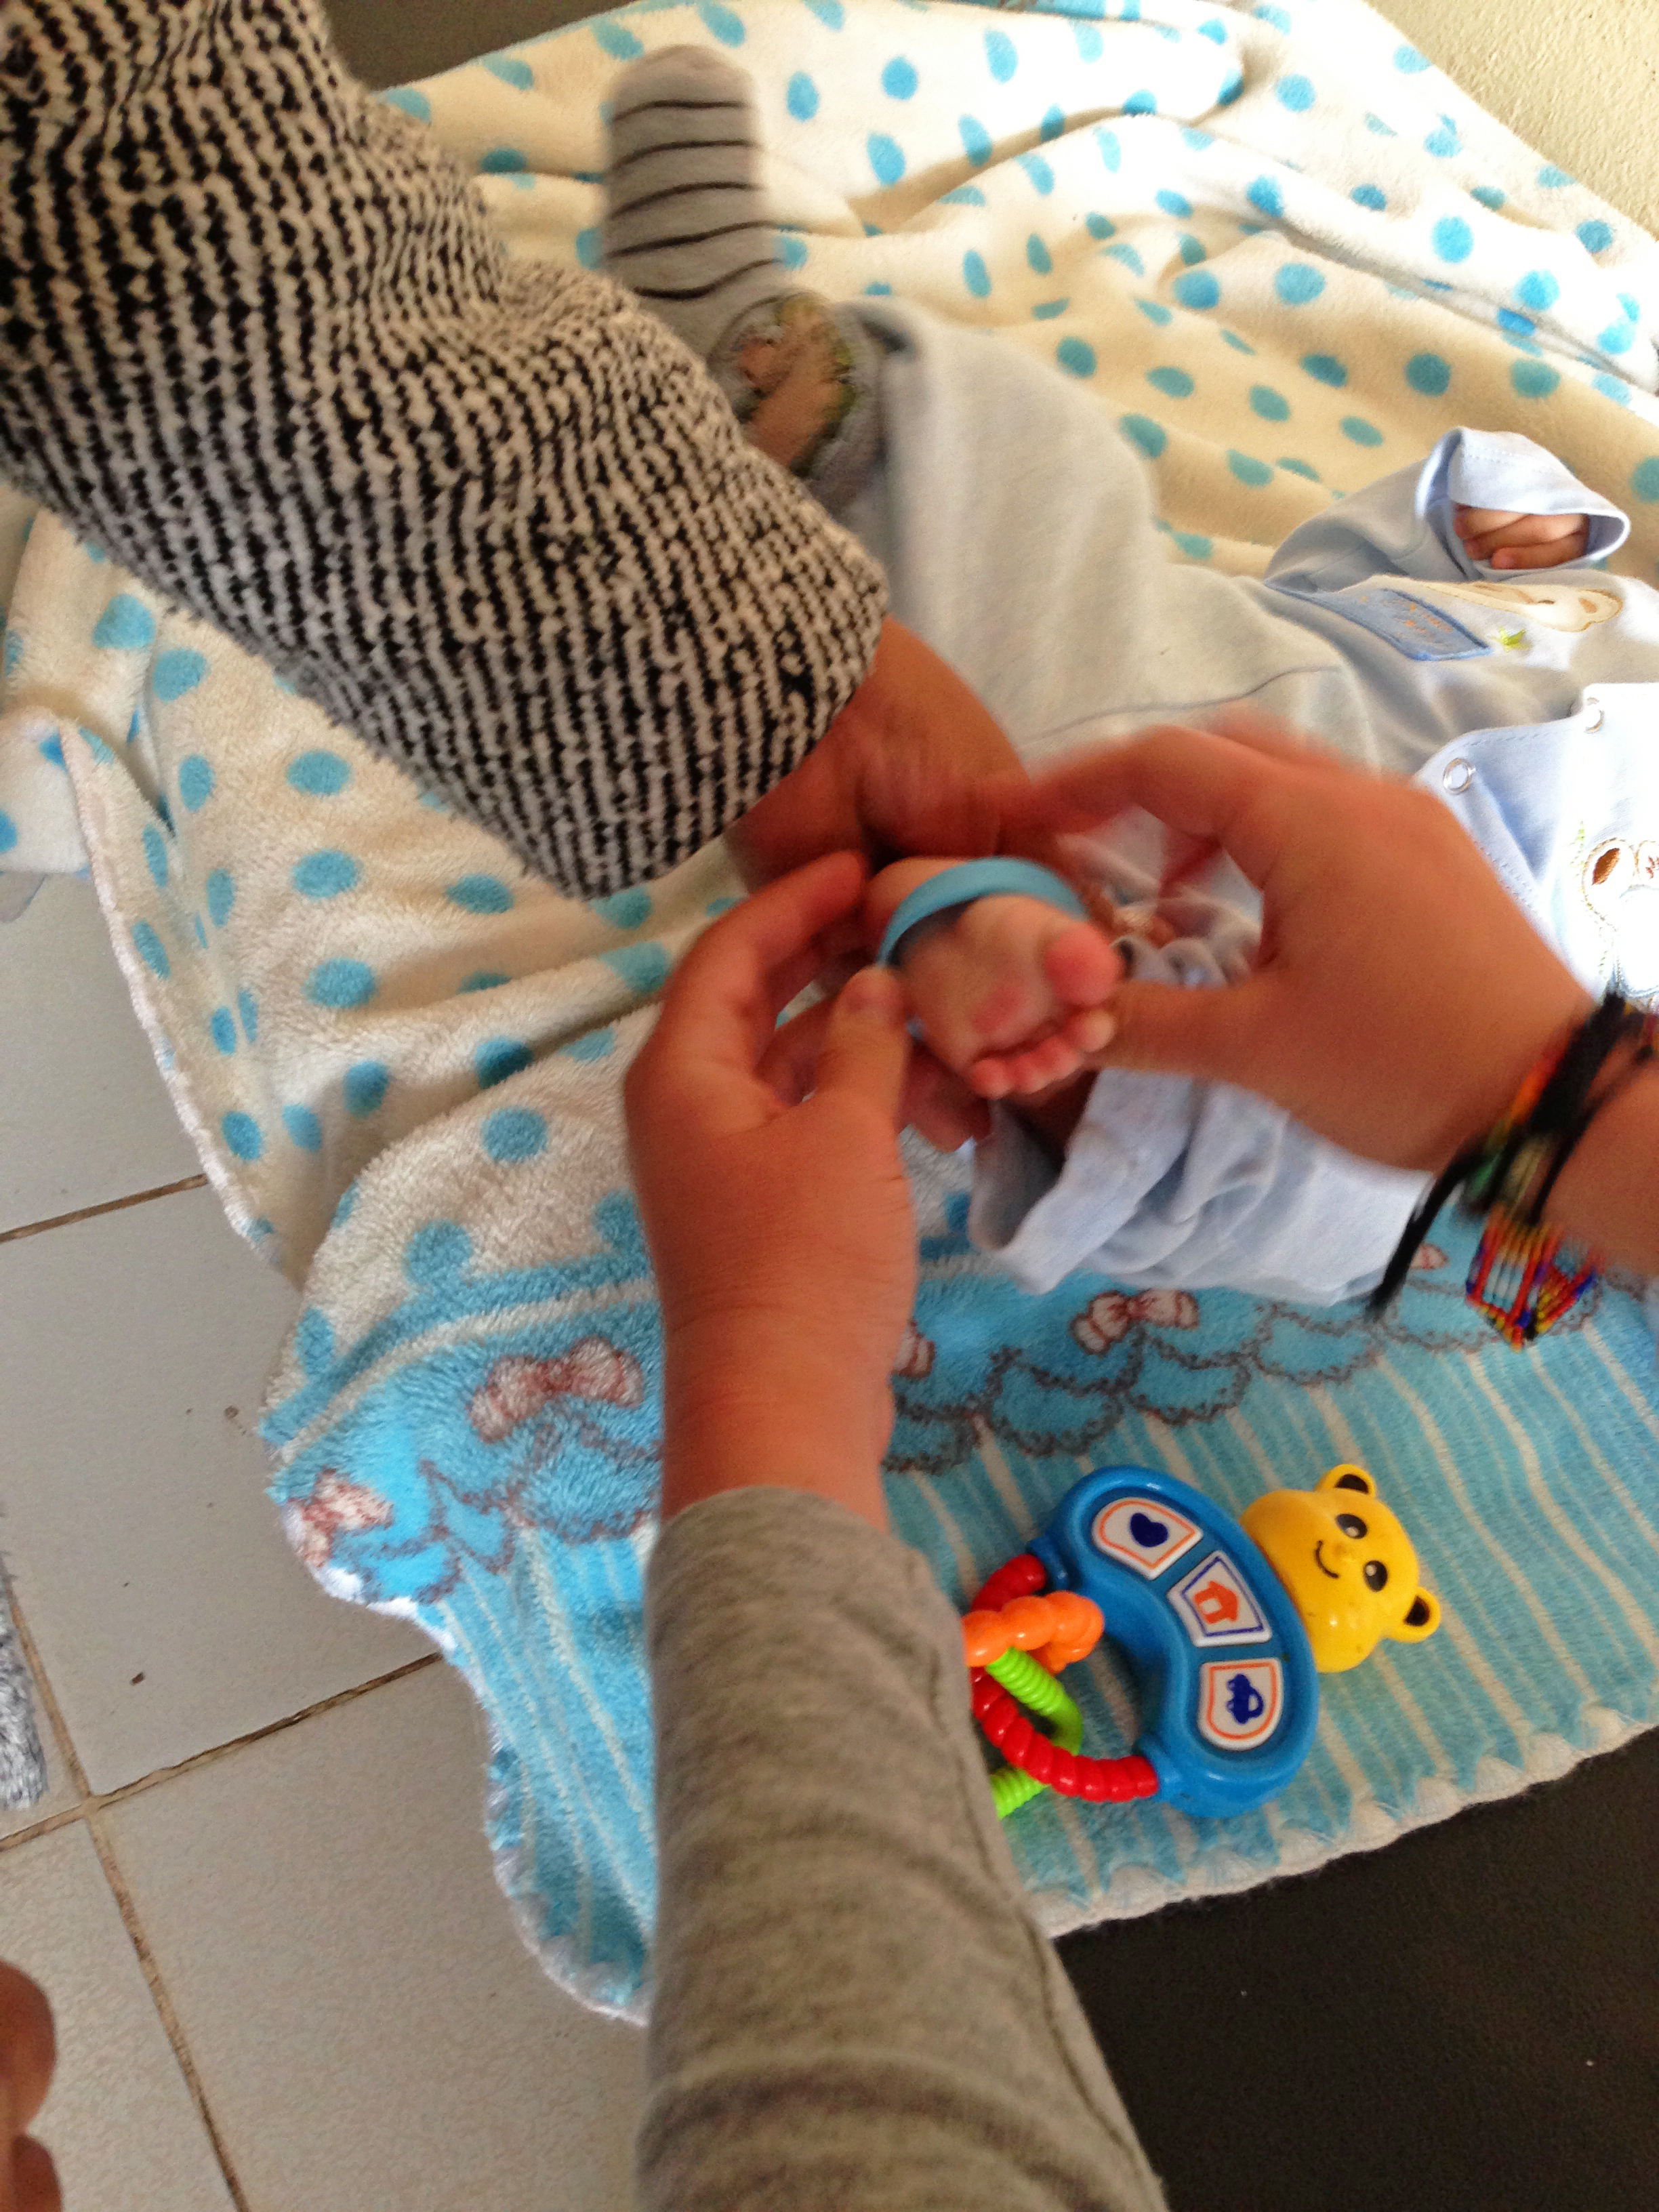 Putting a bracelet on a 2-month-old's ankle. Photo taken: June 1, 2013.